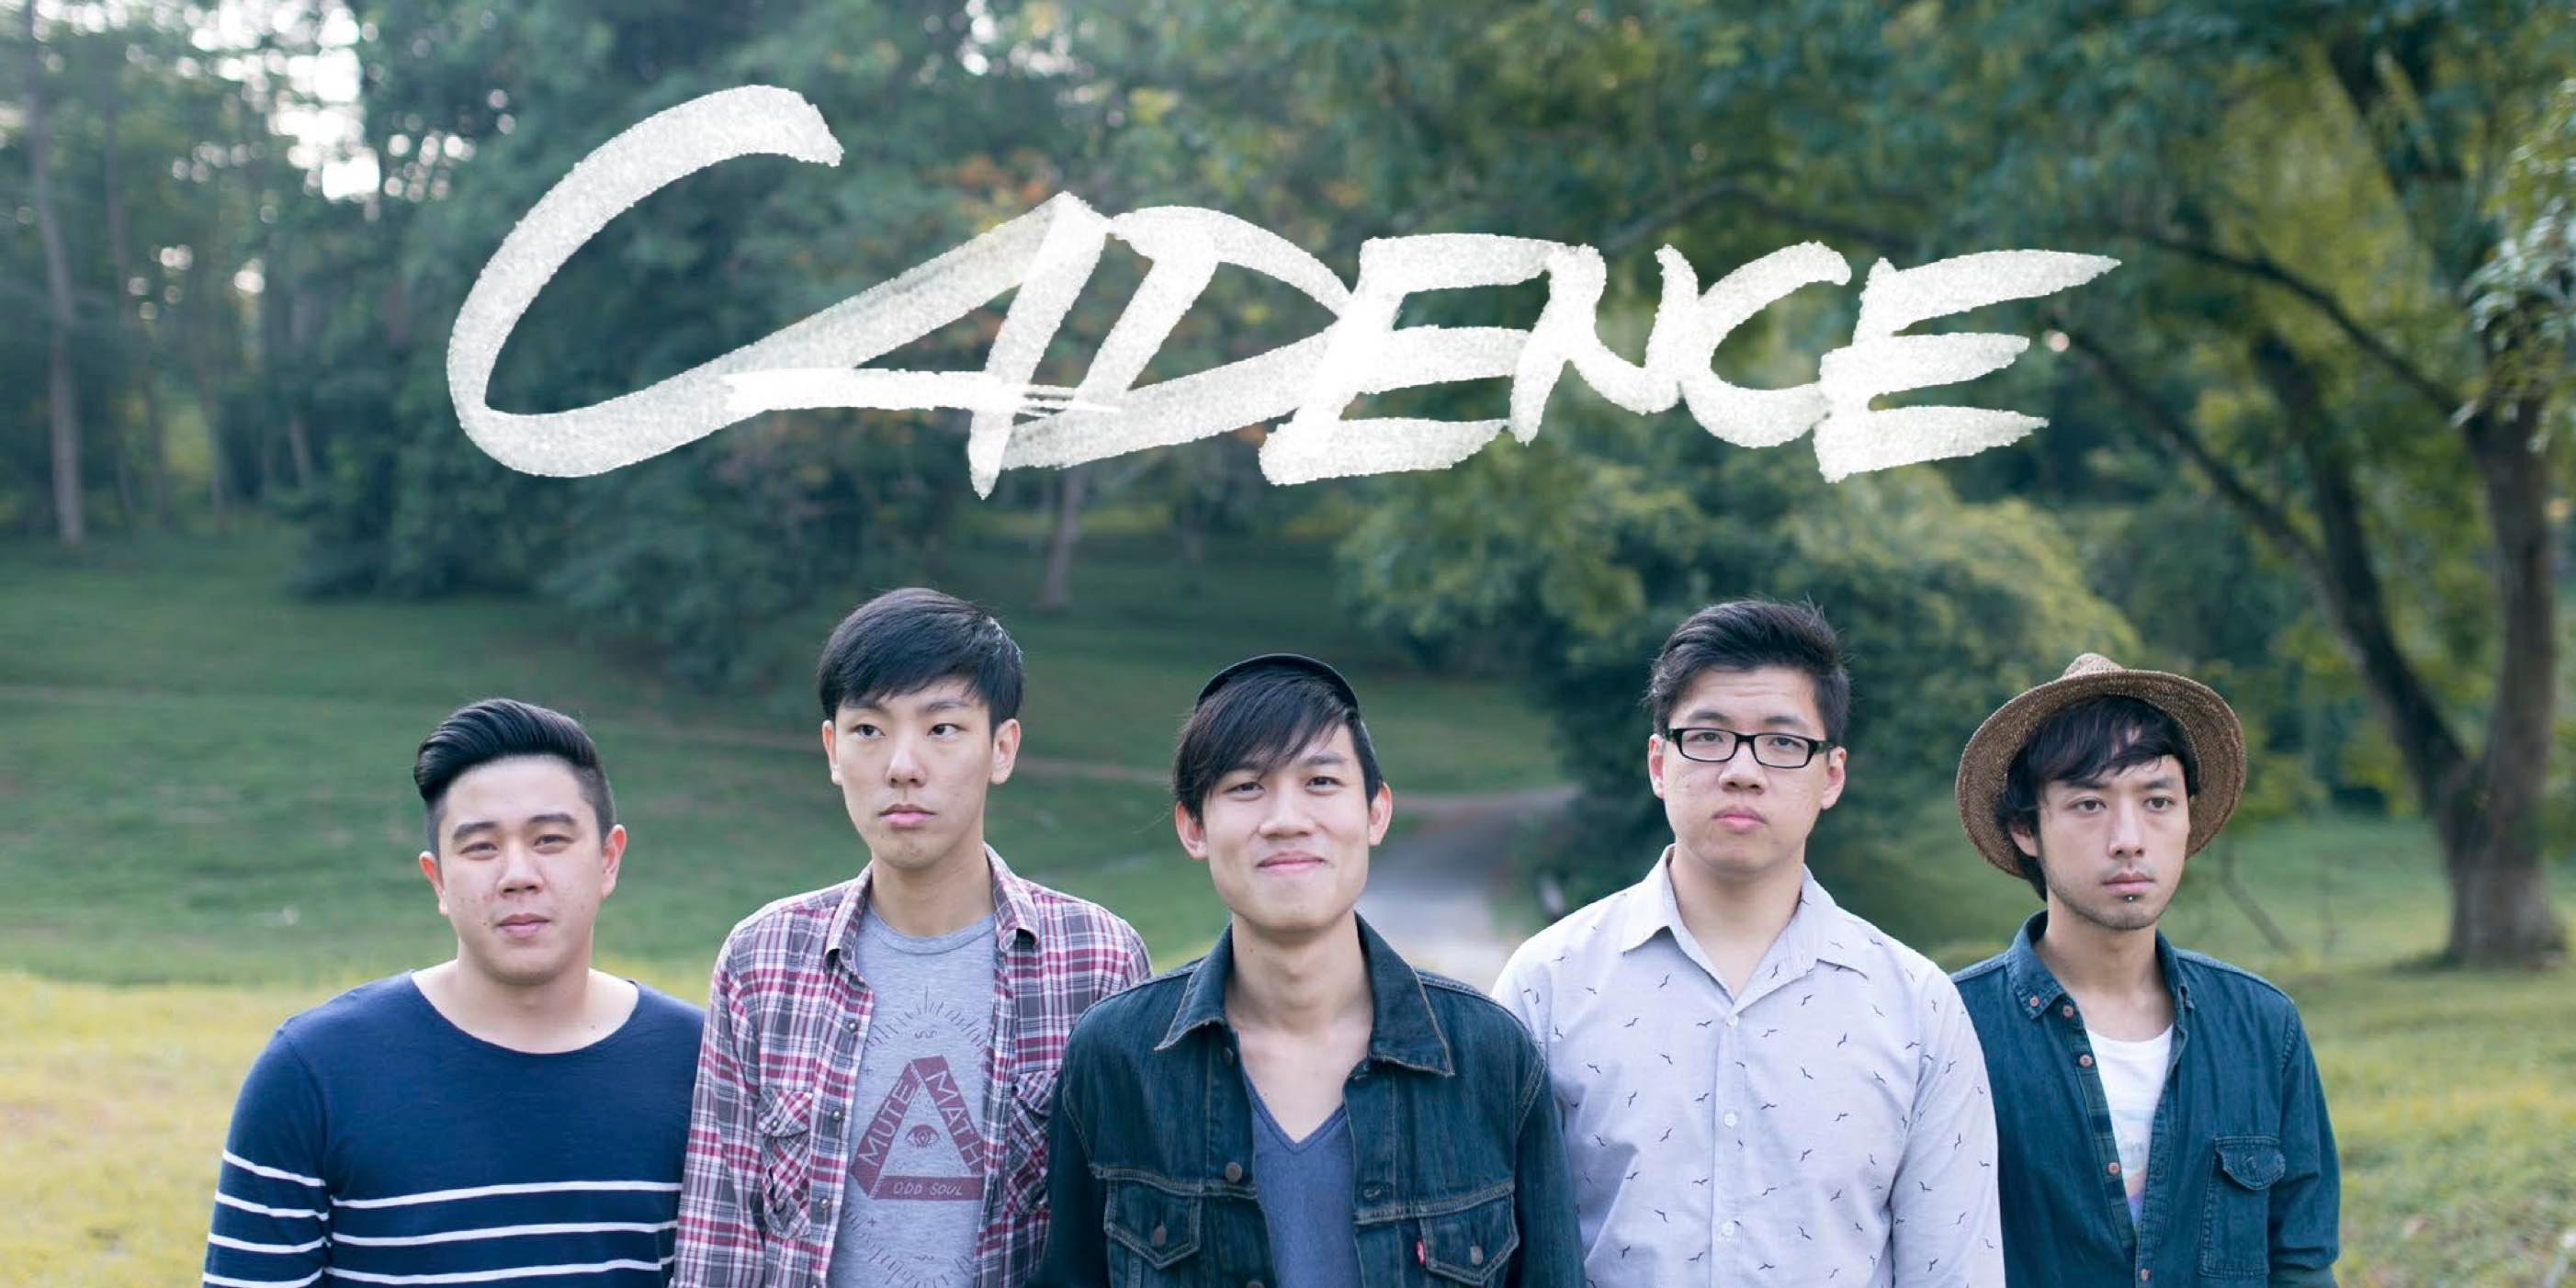 Local band Cadence aspires for greater Heights with Debut EP